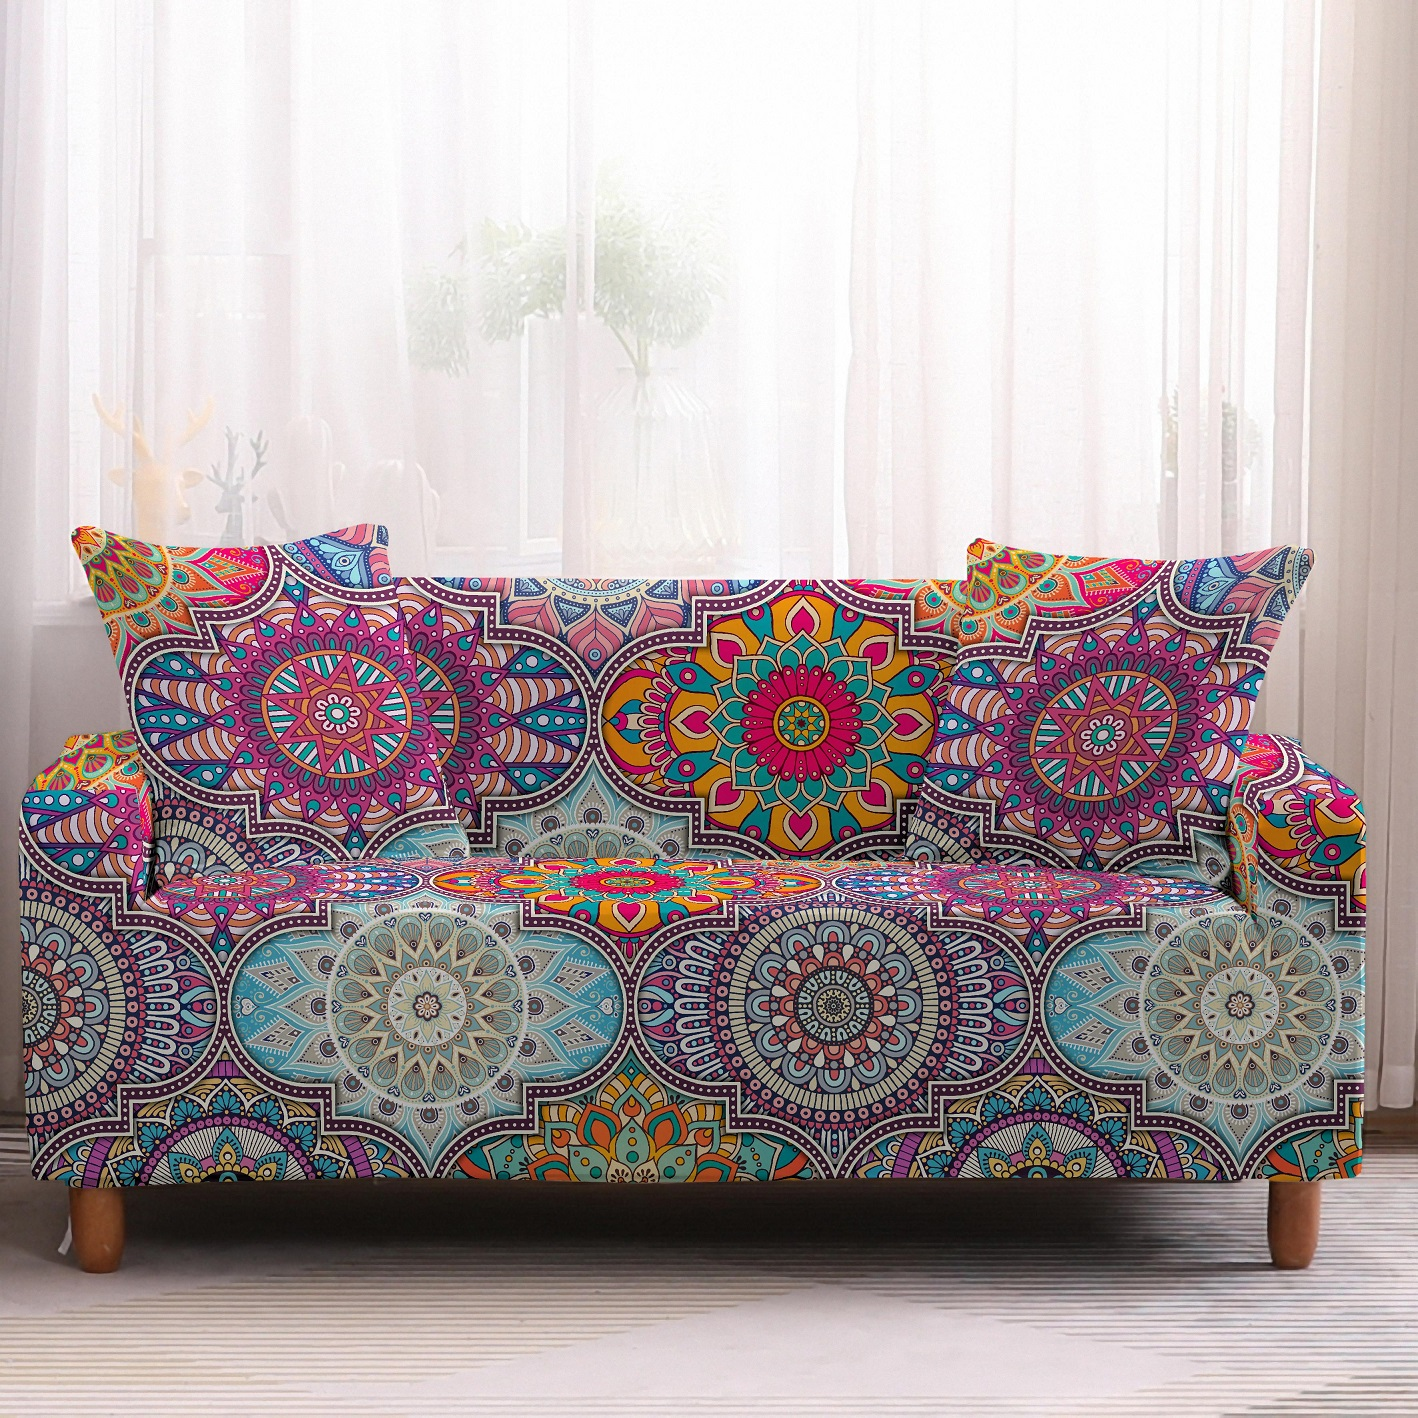 Bohemia Slipcovers Sofa Cover in Mandala Pattern to Protect Living Room Furniture from Stains and Dust